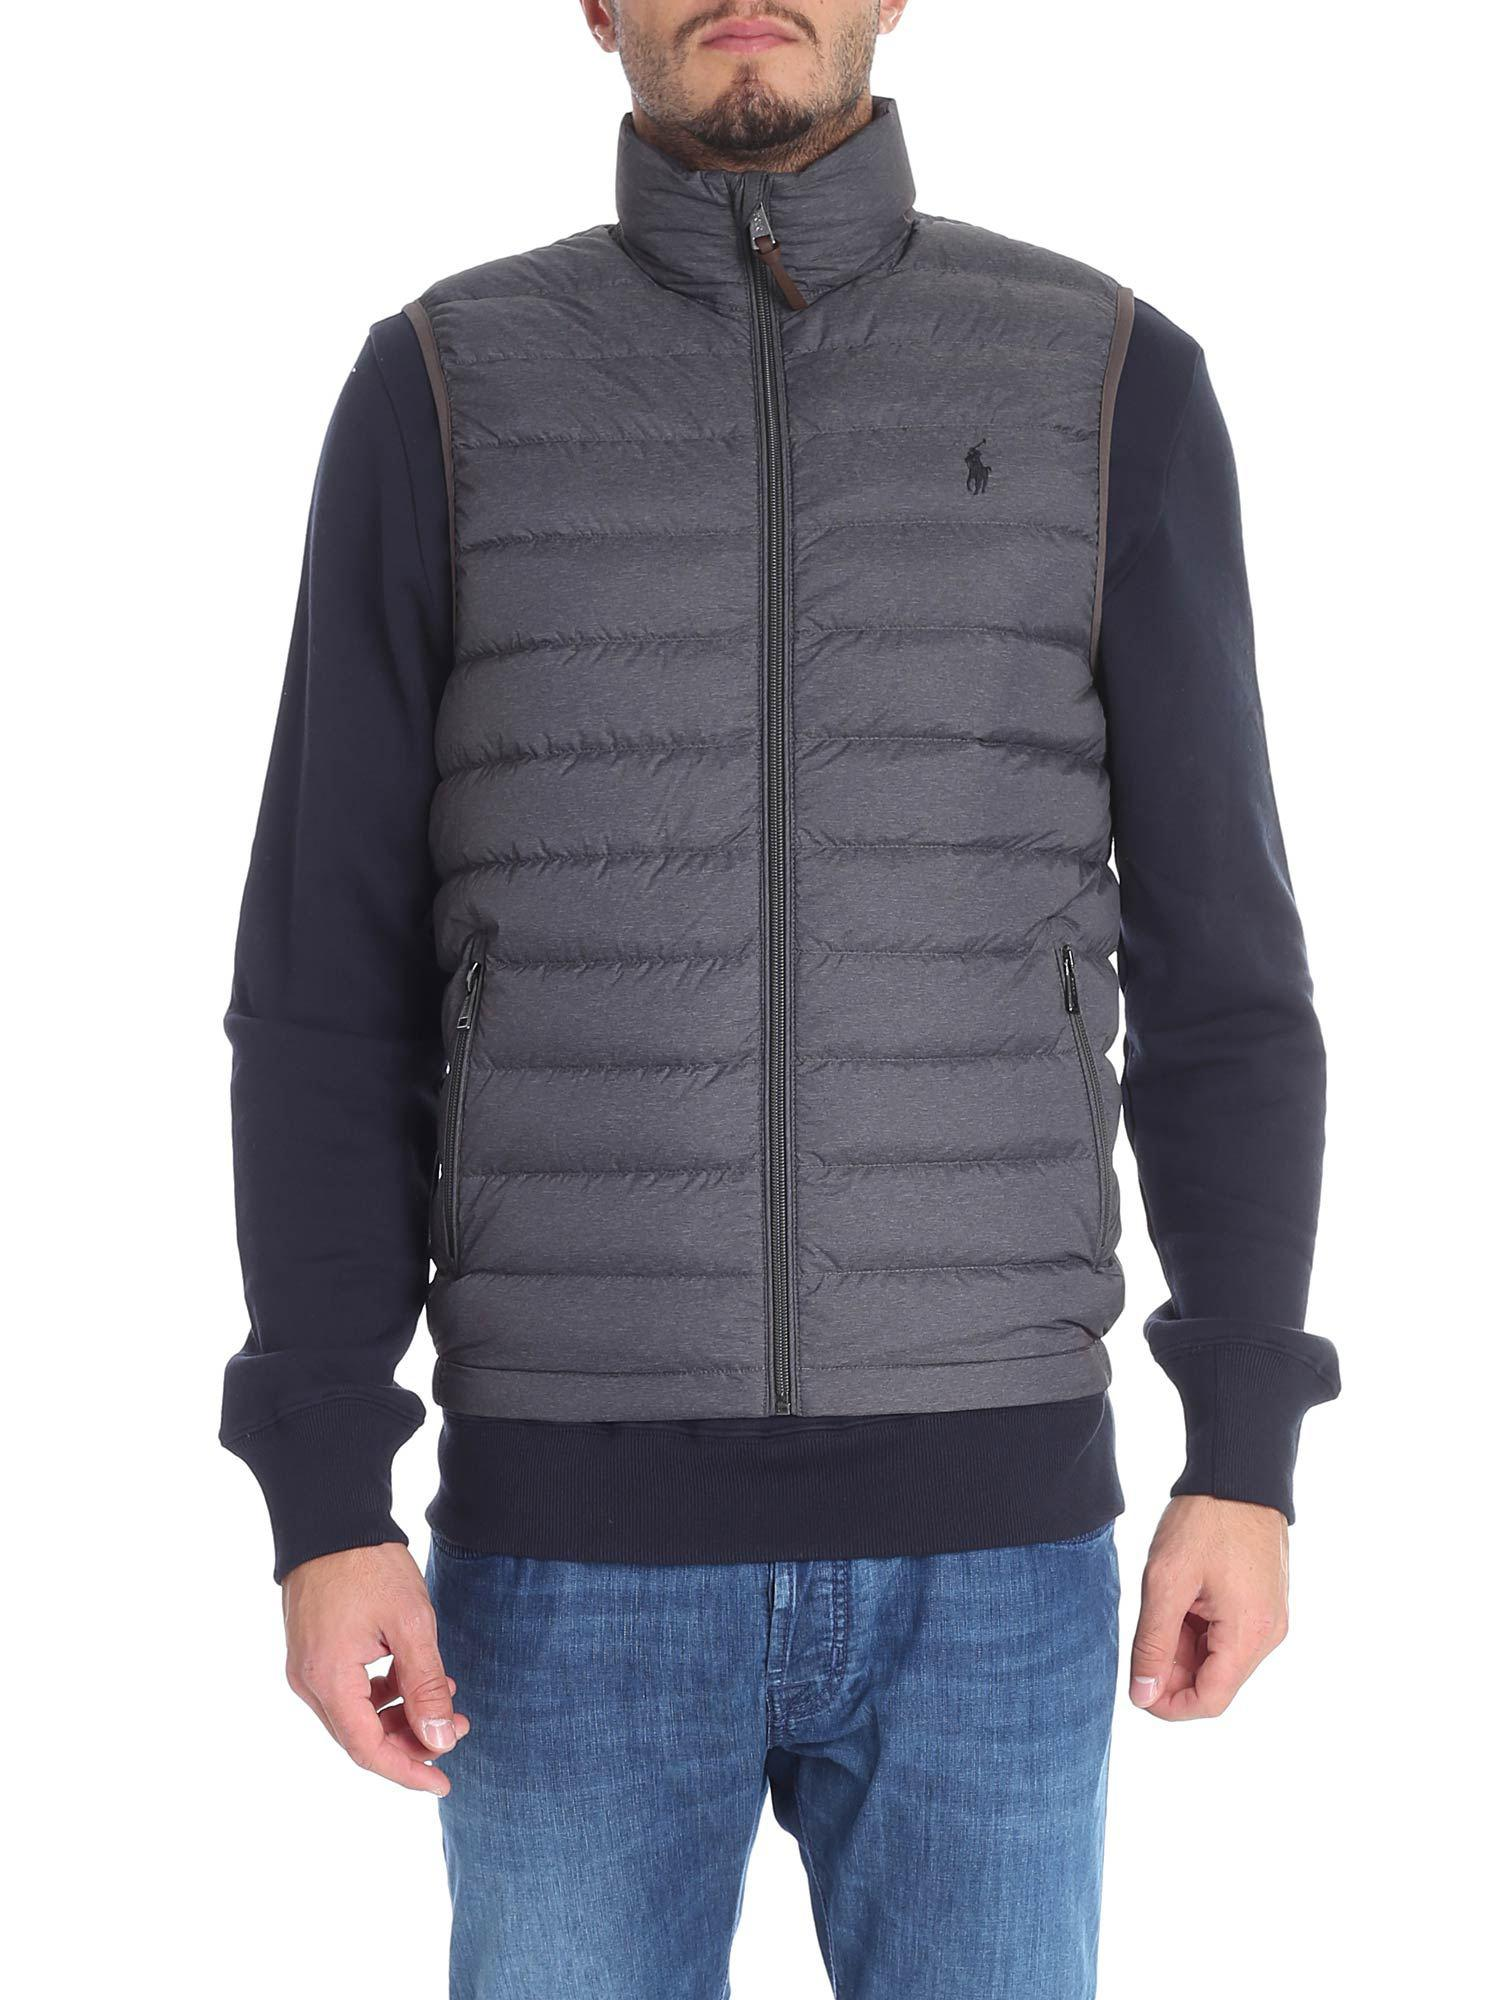 8d451820c598 Lyst - Polo Ralph Lauren Dark Grey Down Jacket With Logo Embroidery ...